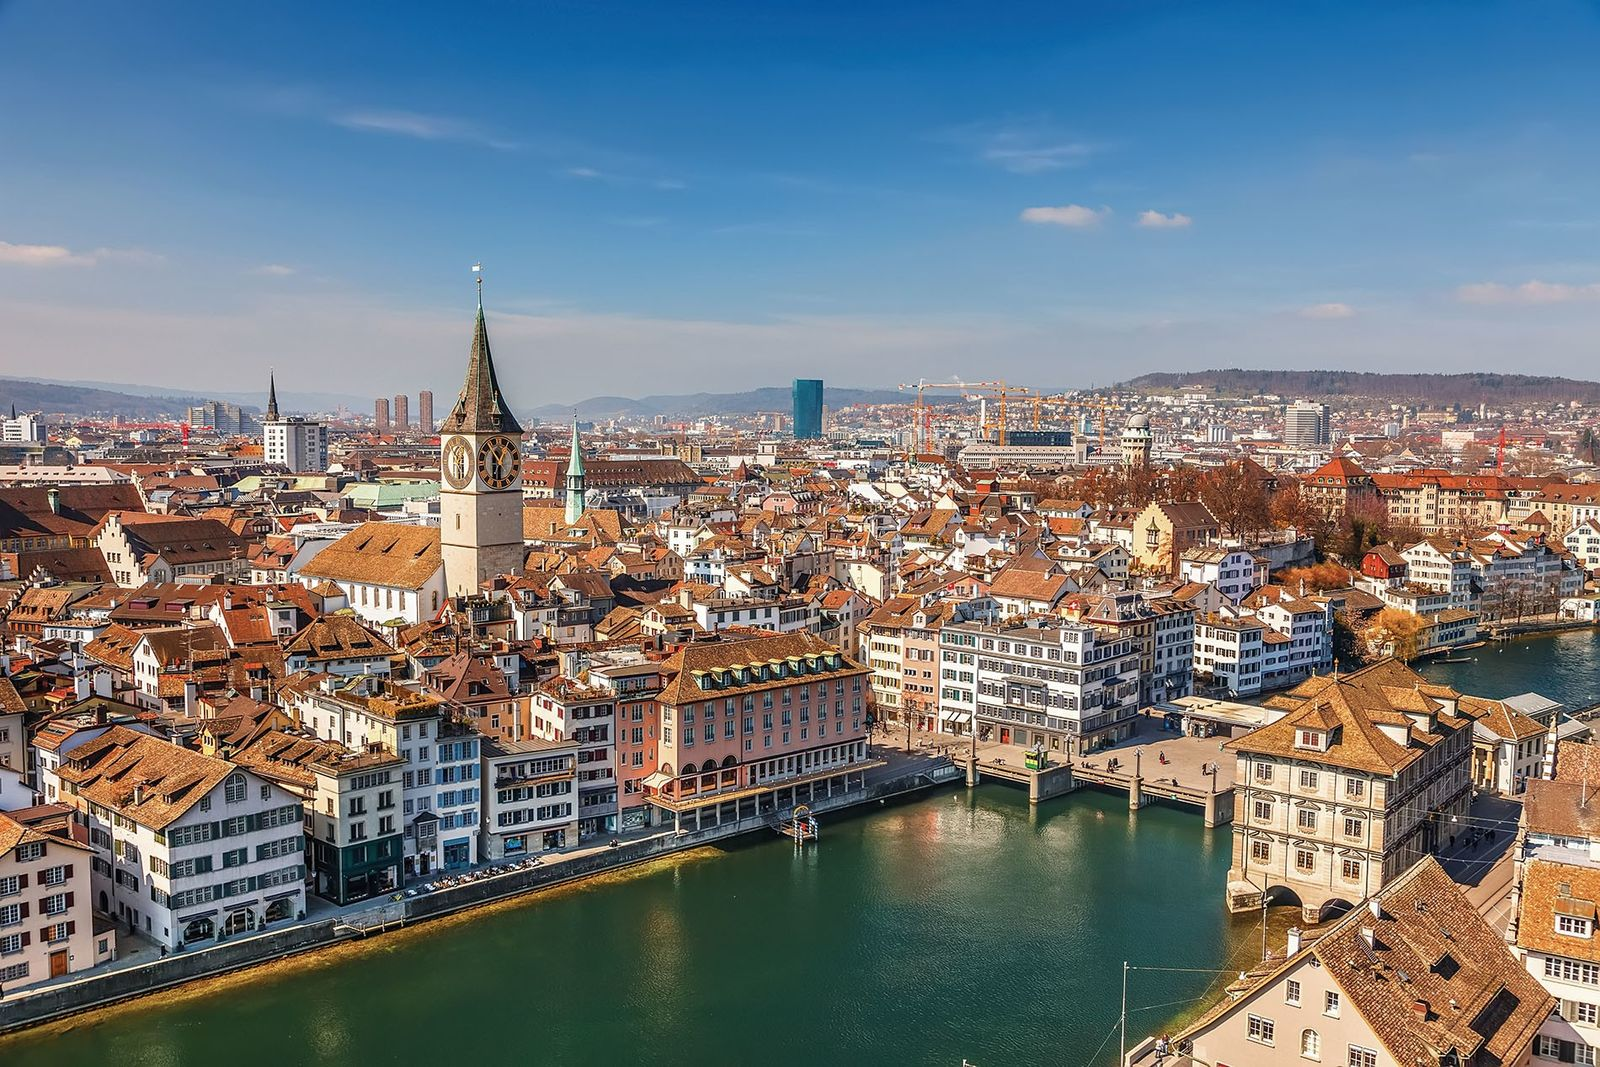 Lindt & Sprüngli chocolate has been produced on the banks of Lake Zurich since 1899.